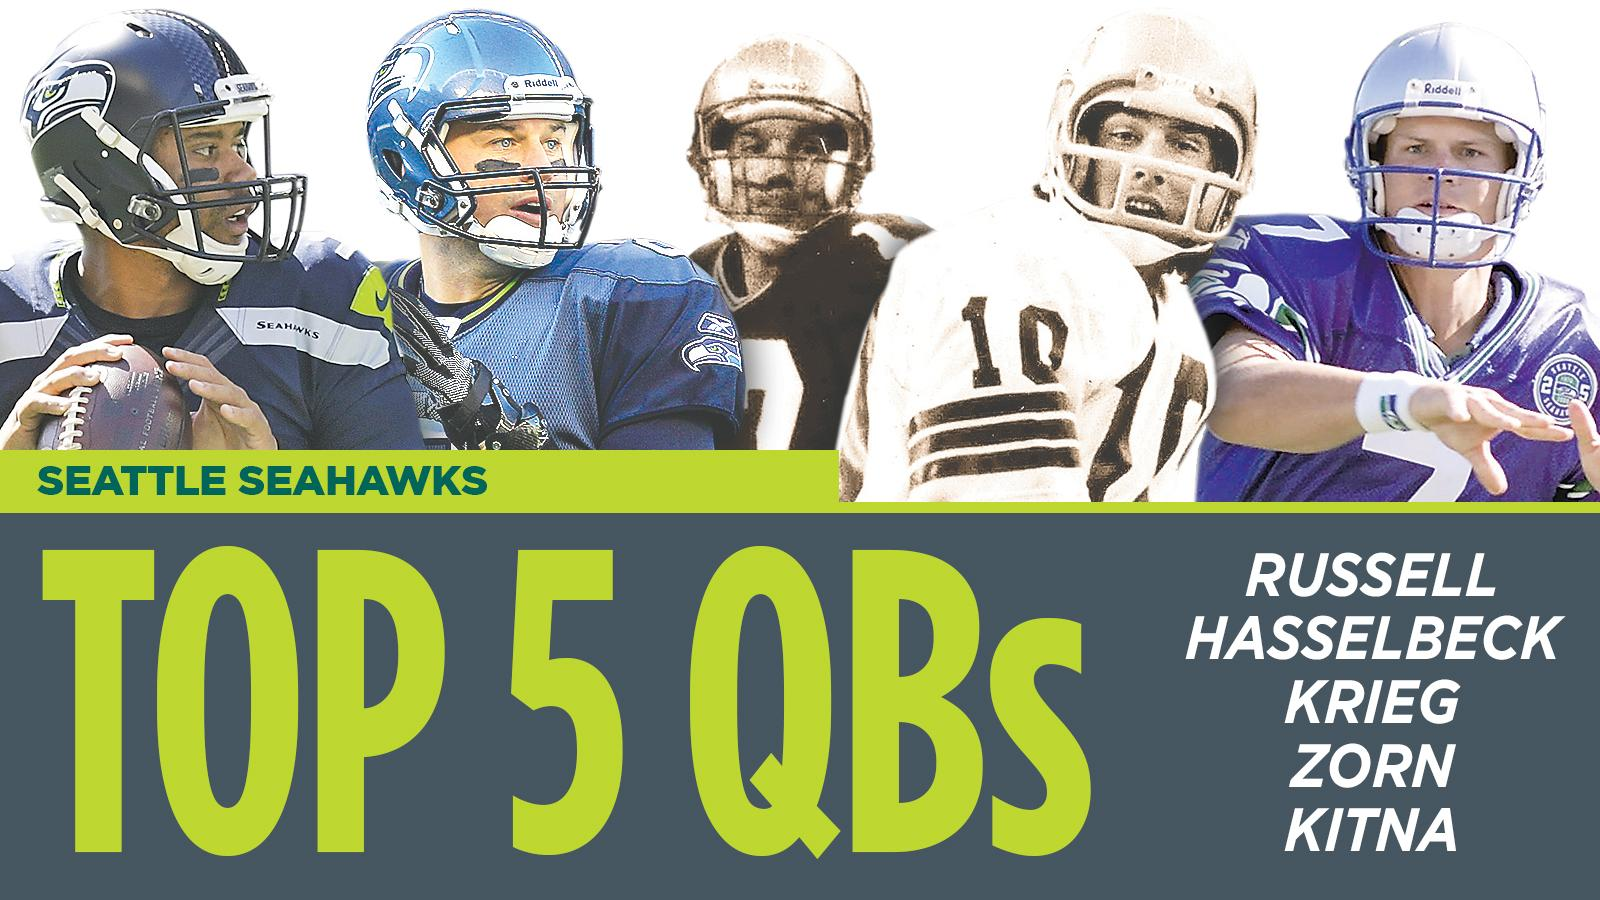 ae85d565b 2017 football: Five best Seahawks QBs of all-time   The Spokesman-Review